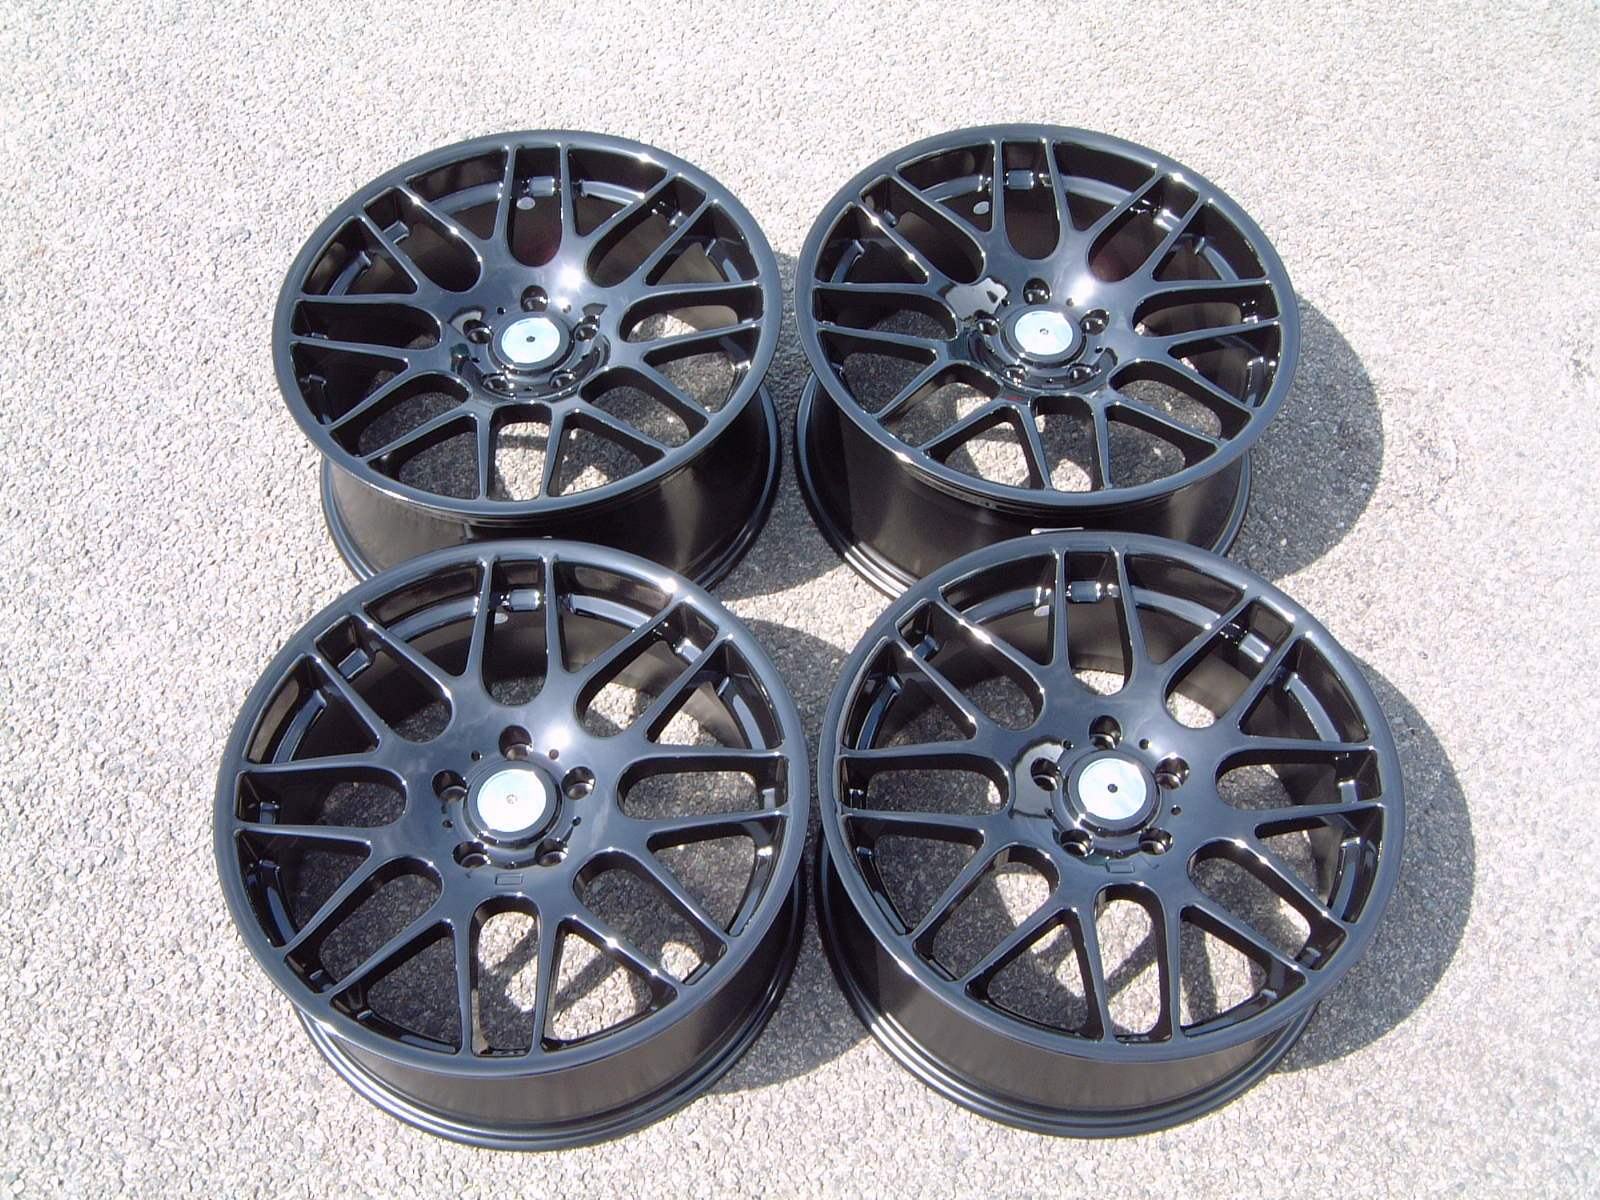 New 19 Quot Riva Dtm Csl Alloys Gloss Black Deeper Concave